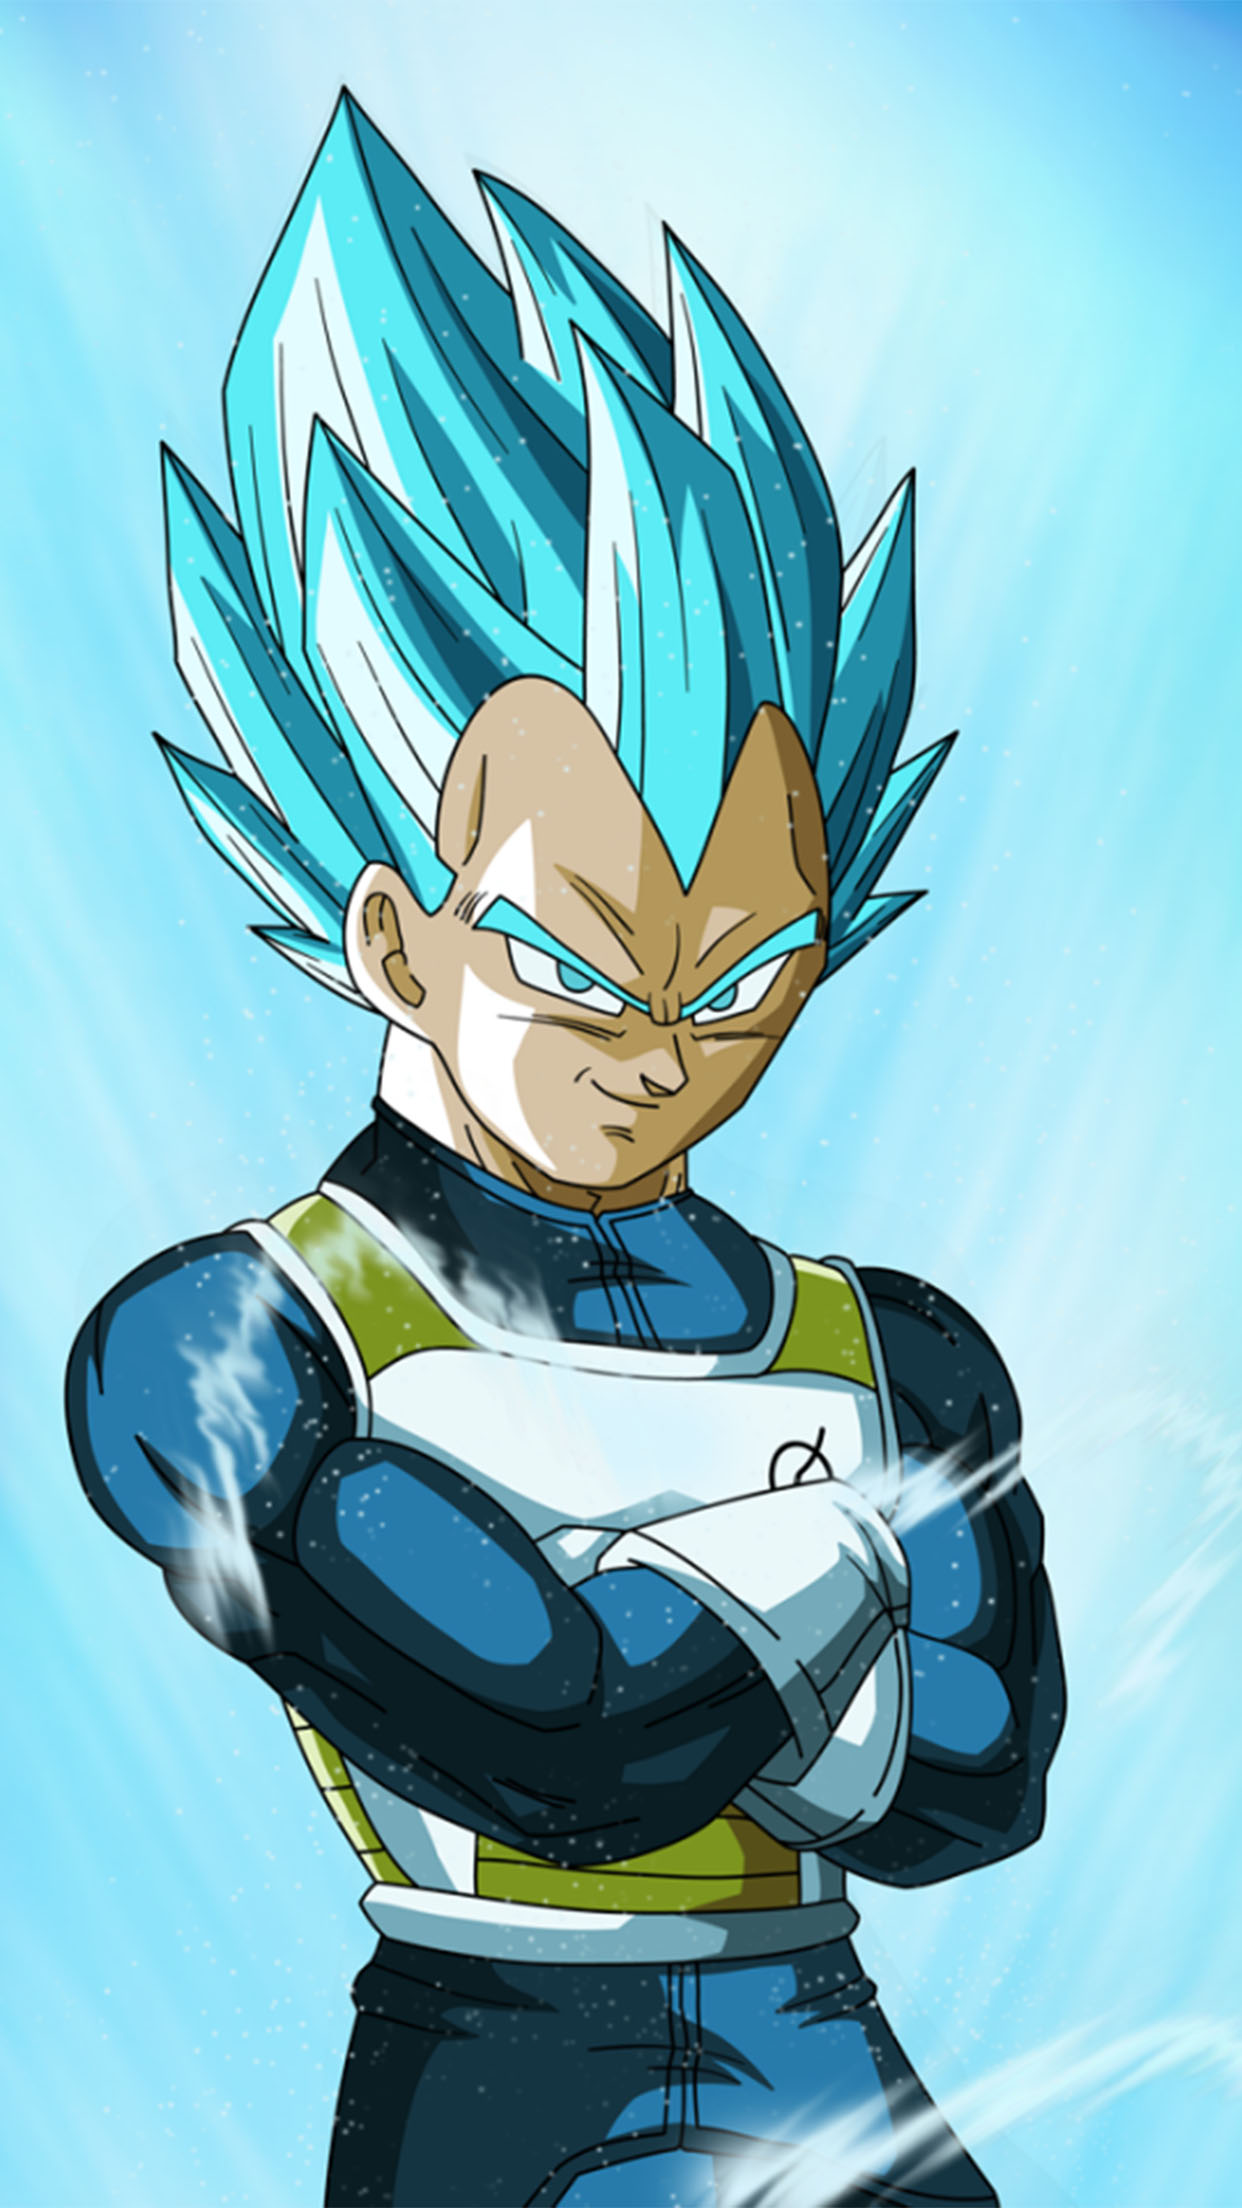 Vegeta Wallpaper For Iphone X 8 7 6 Free Download On